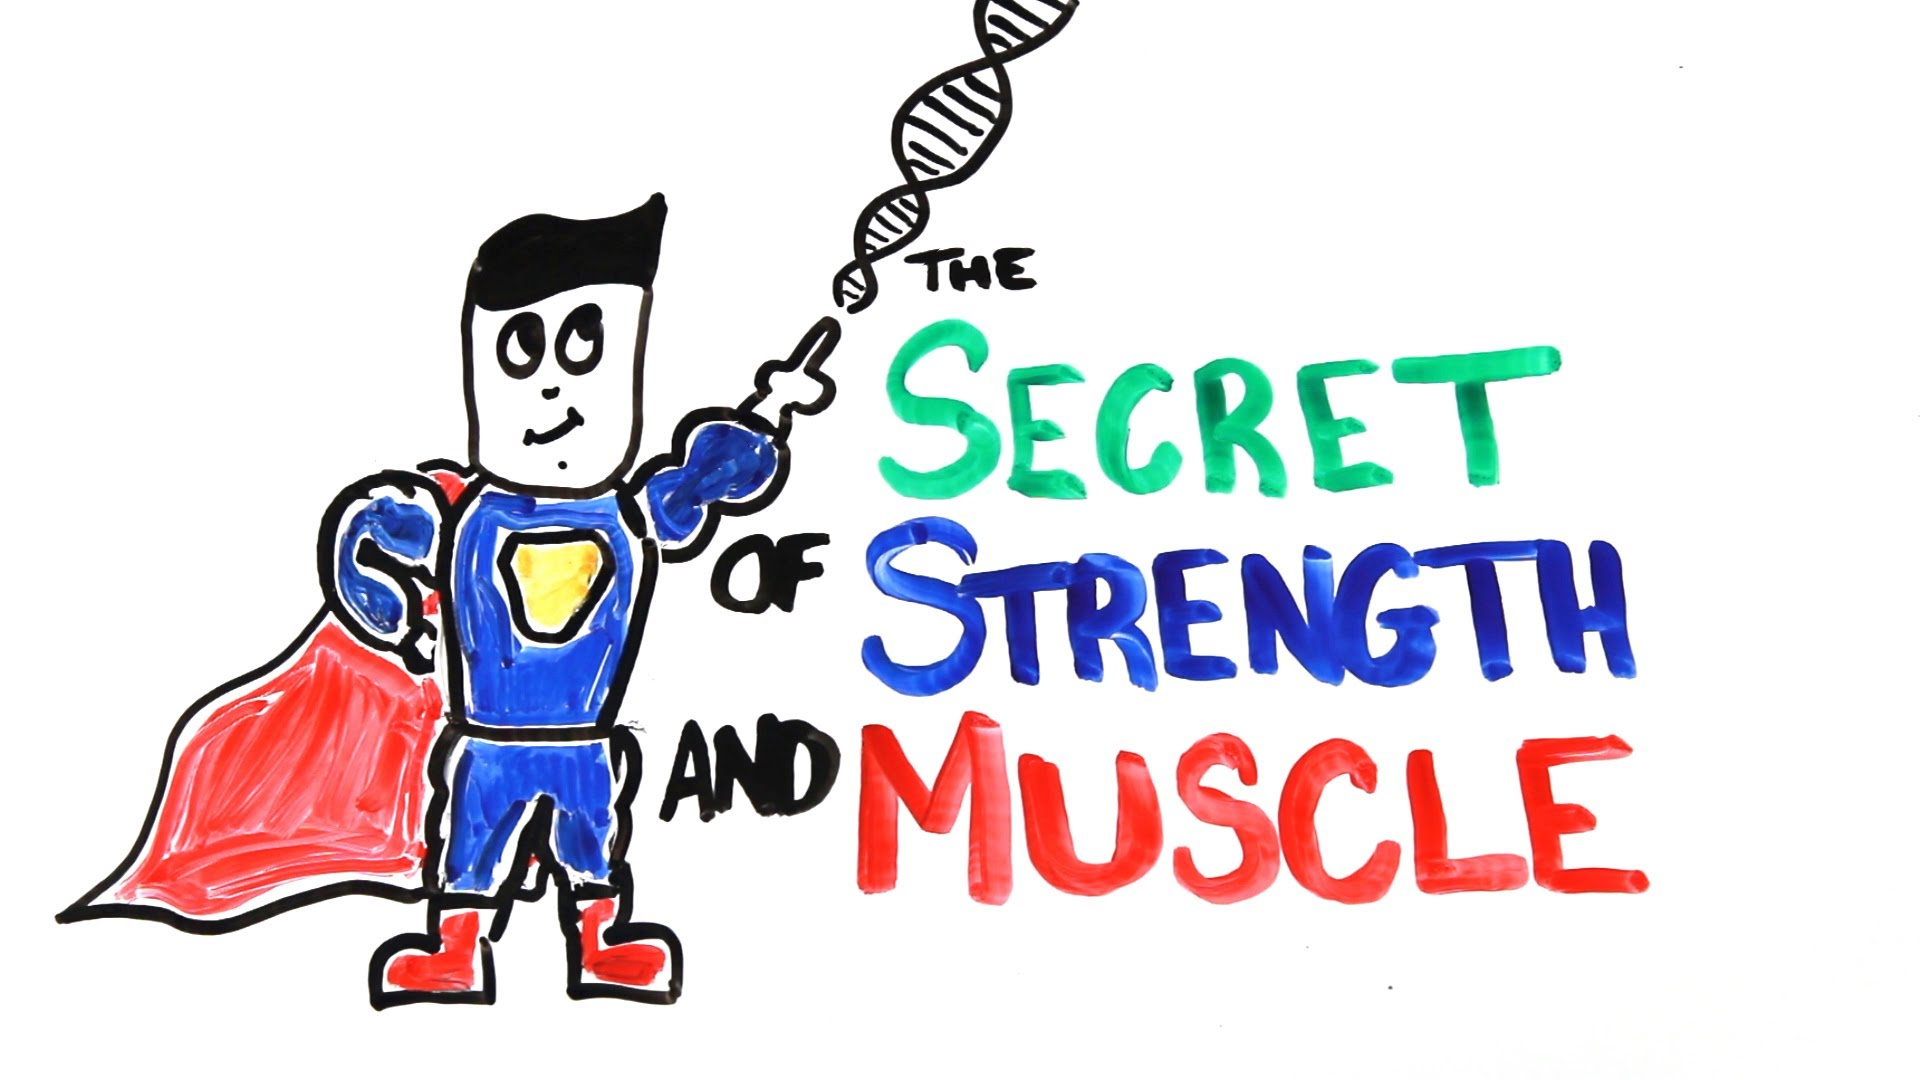 The Scientific Secret Of Strength And Muscle Growth By